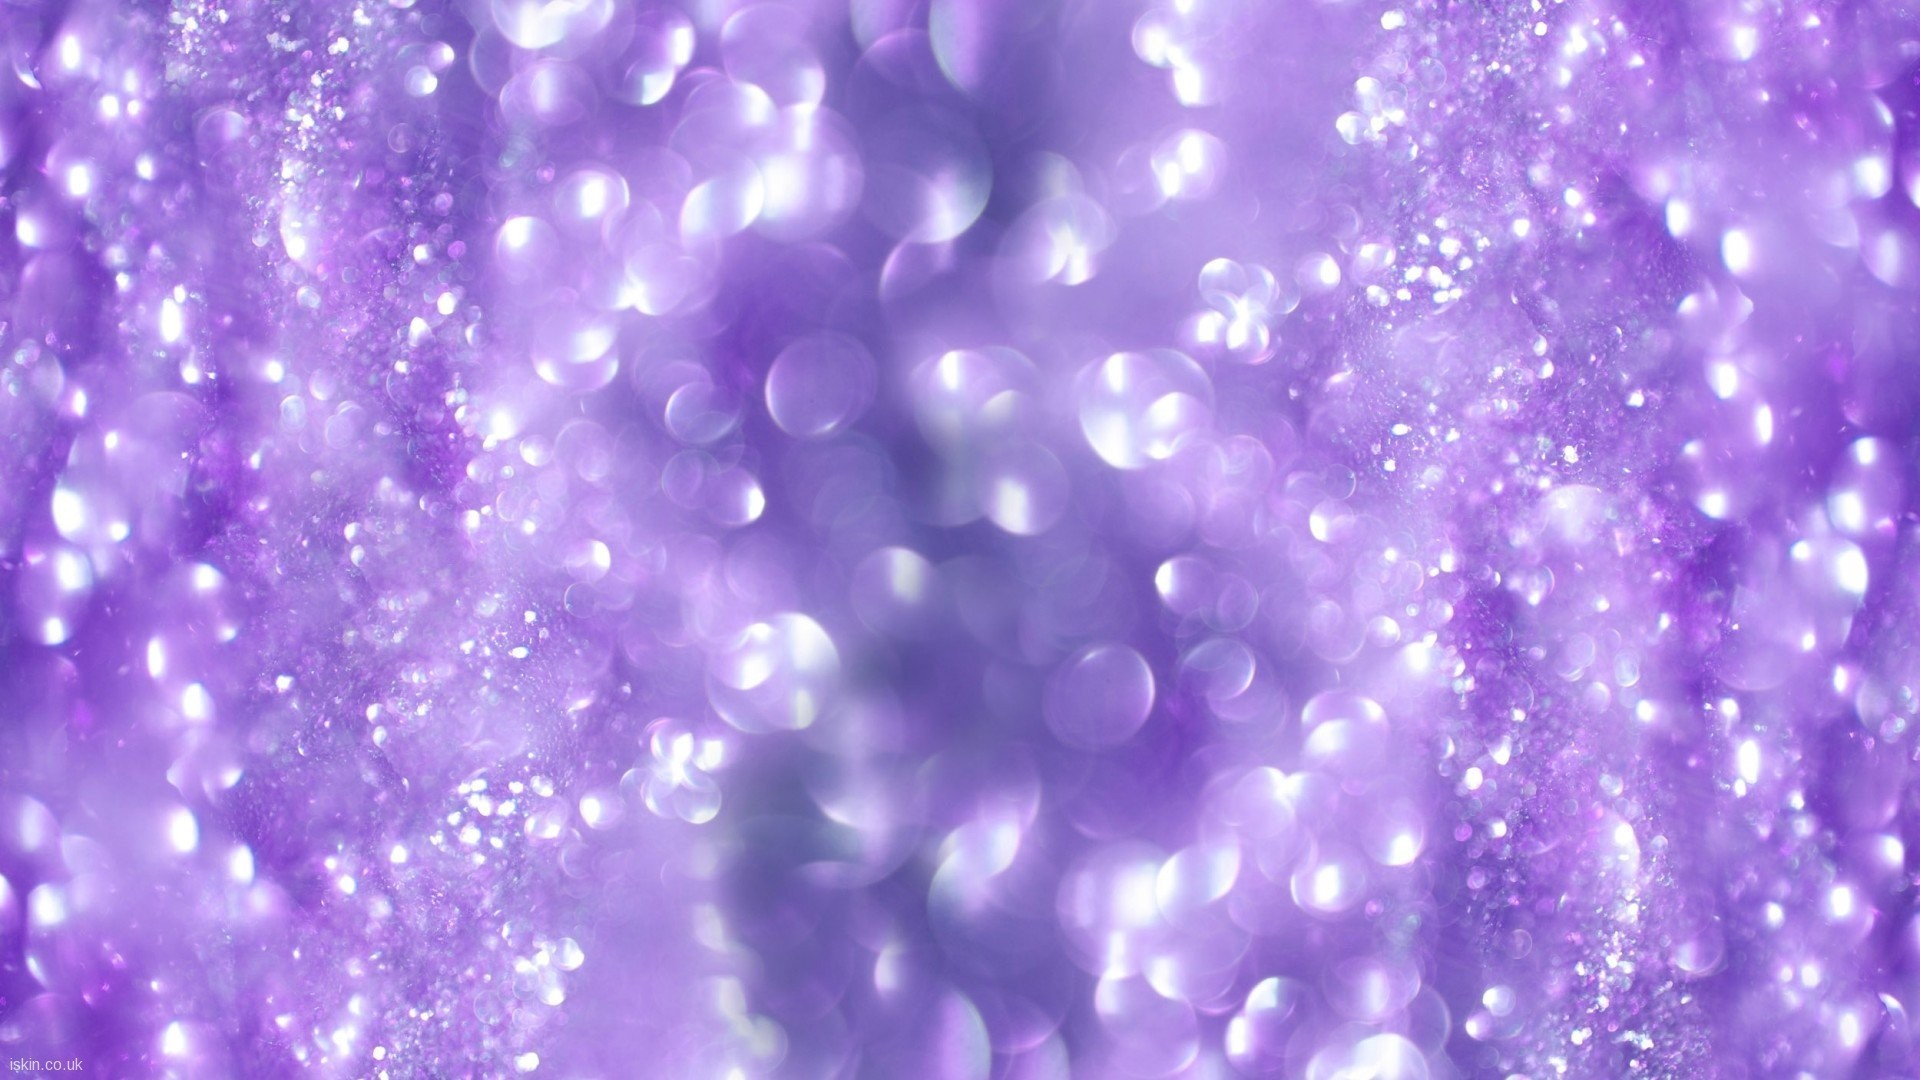 1920x1080 purple tumblr wallpapers hd resolution and wallpapers full hd on abstract  category similar